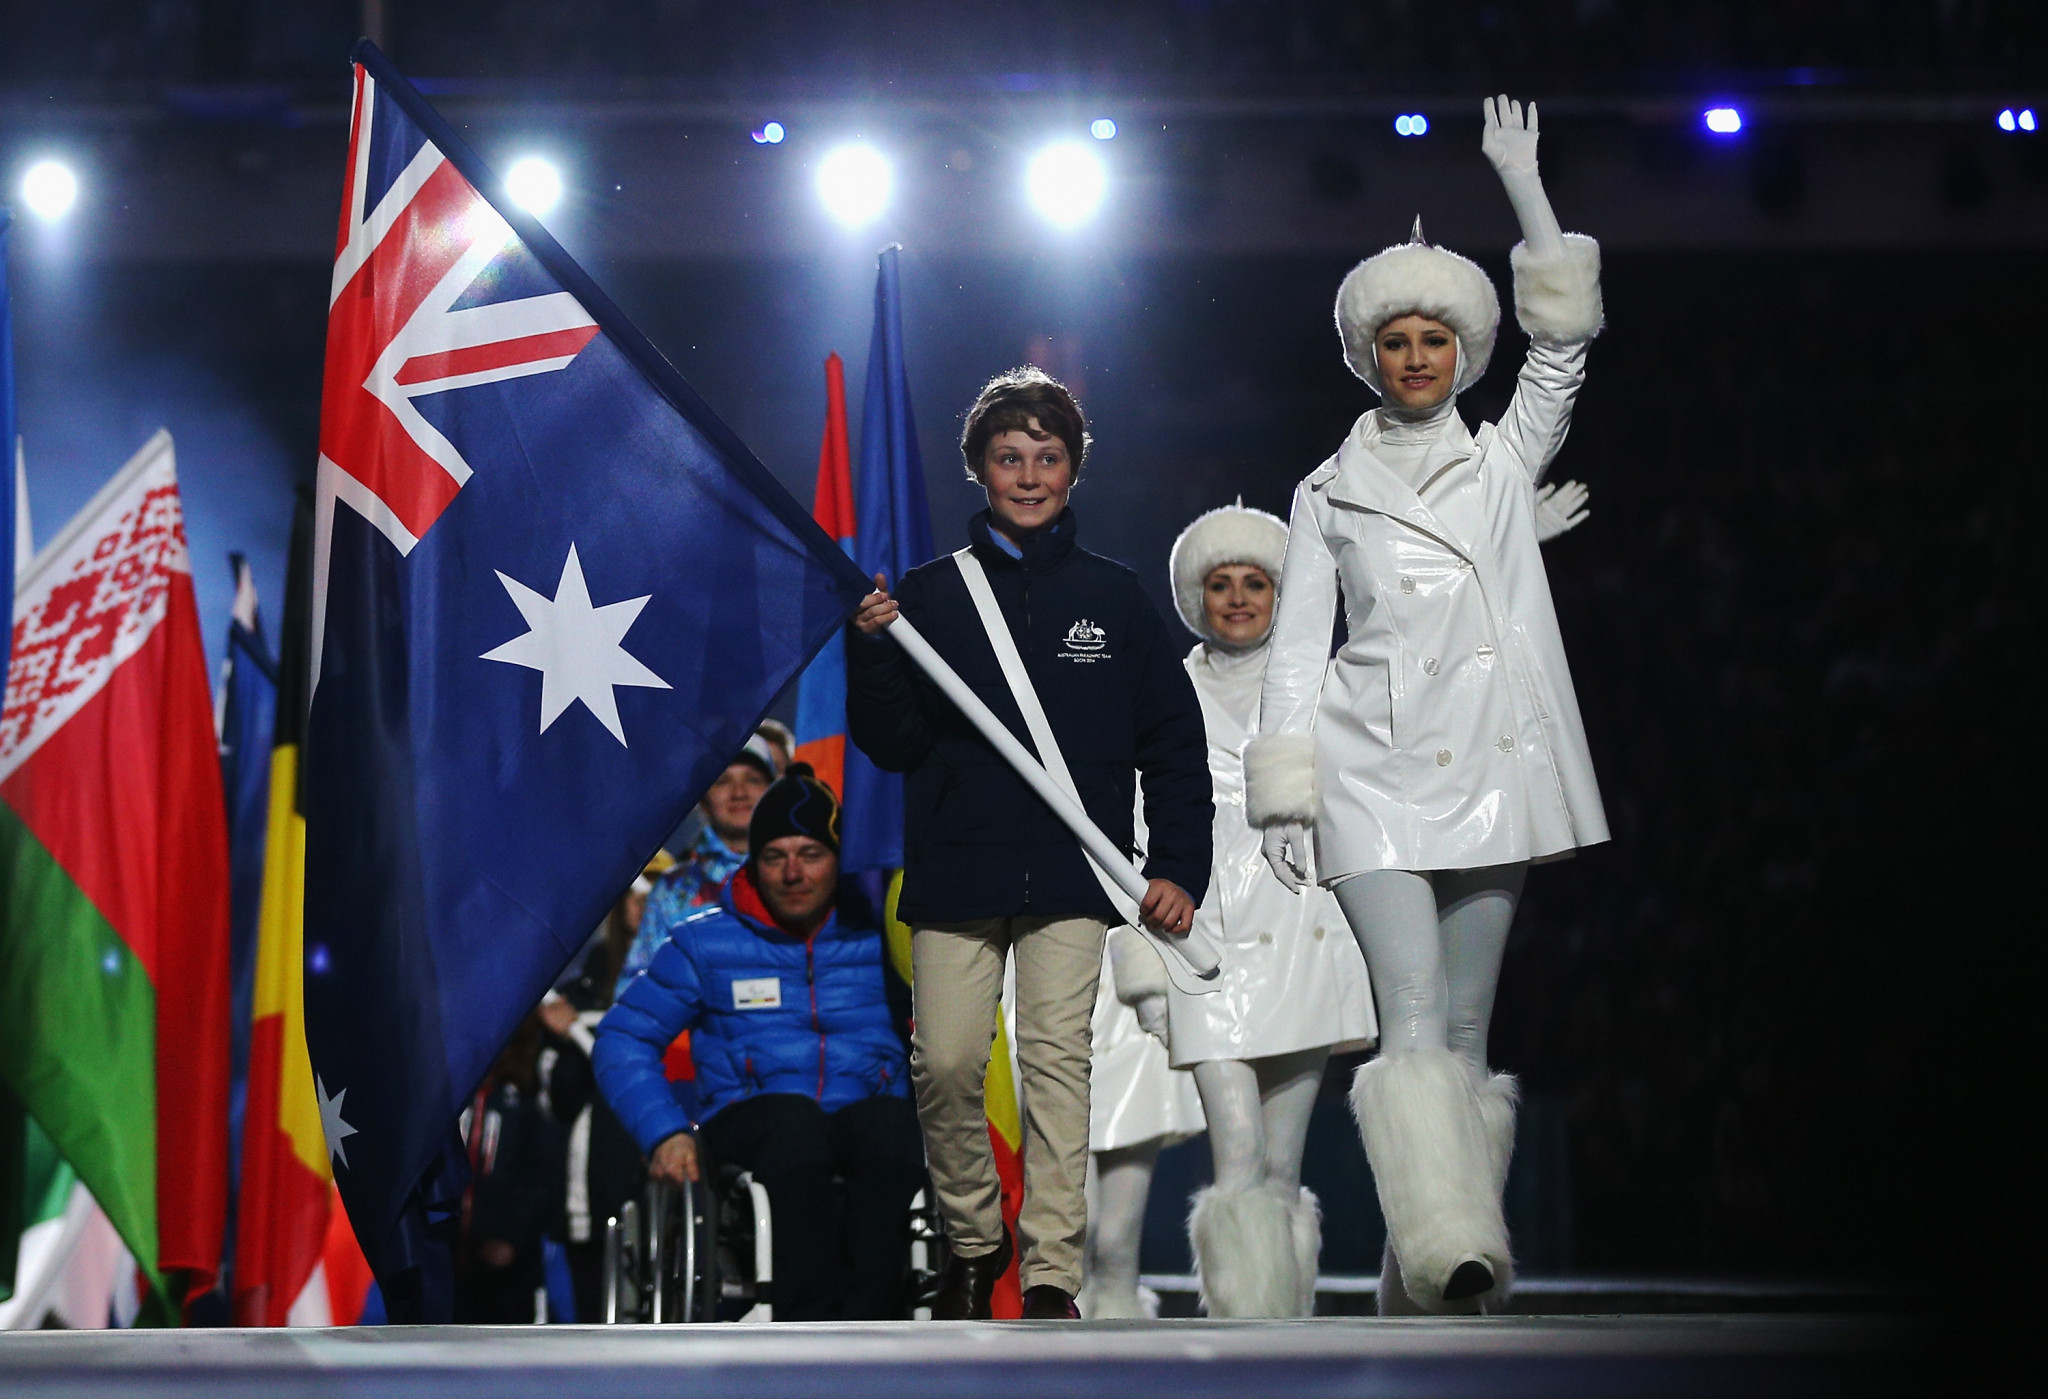 Ben Tudhope carried the Australian flag at the Sochi 2014 Paralympic Games Closing Ceremony ©Getty Images